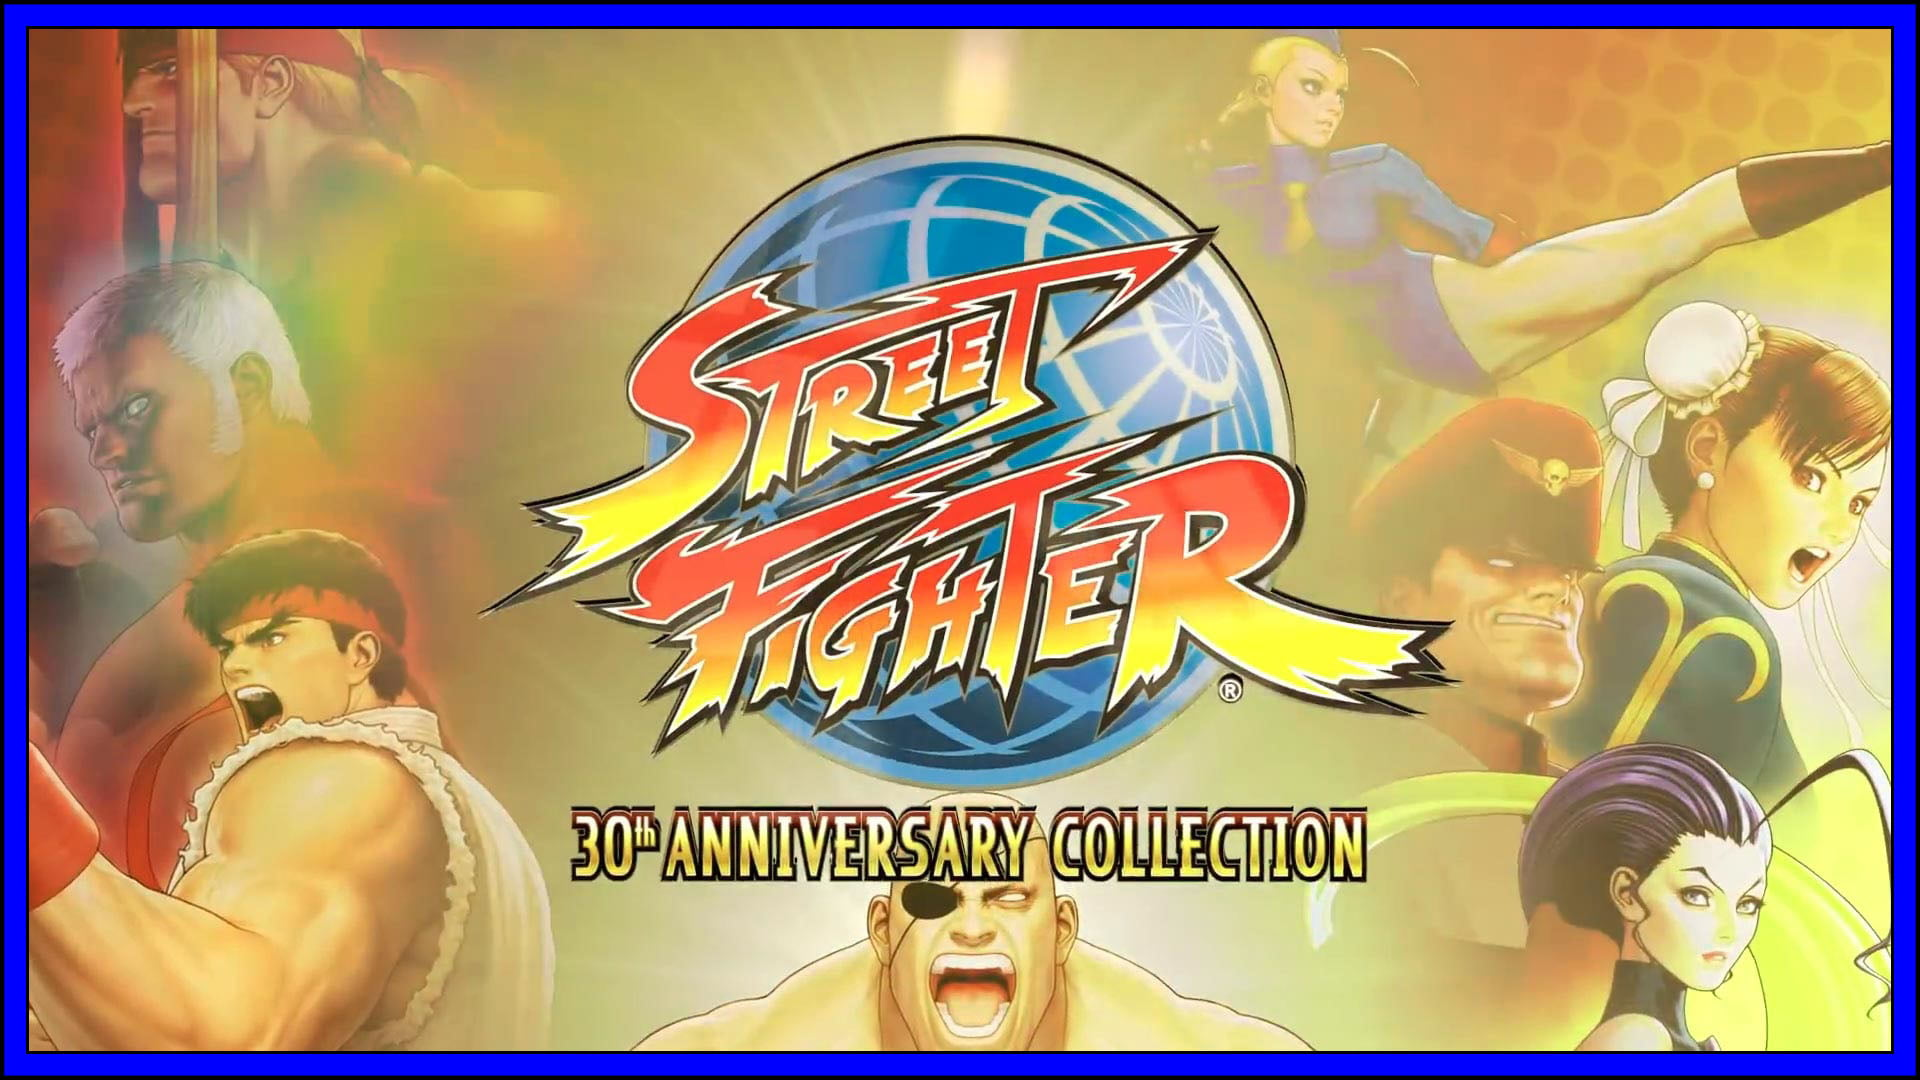 Street Fighter Collection Fi3